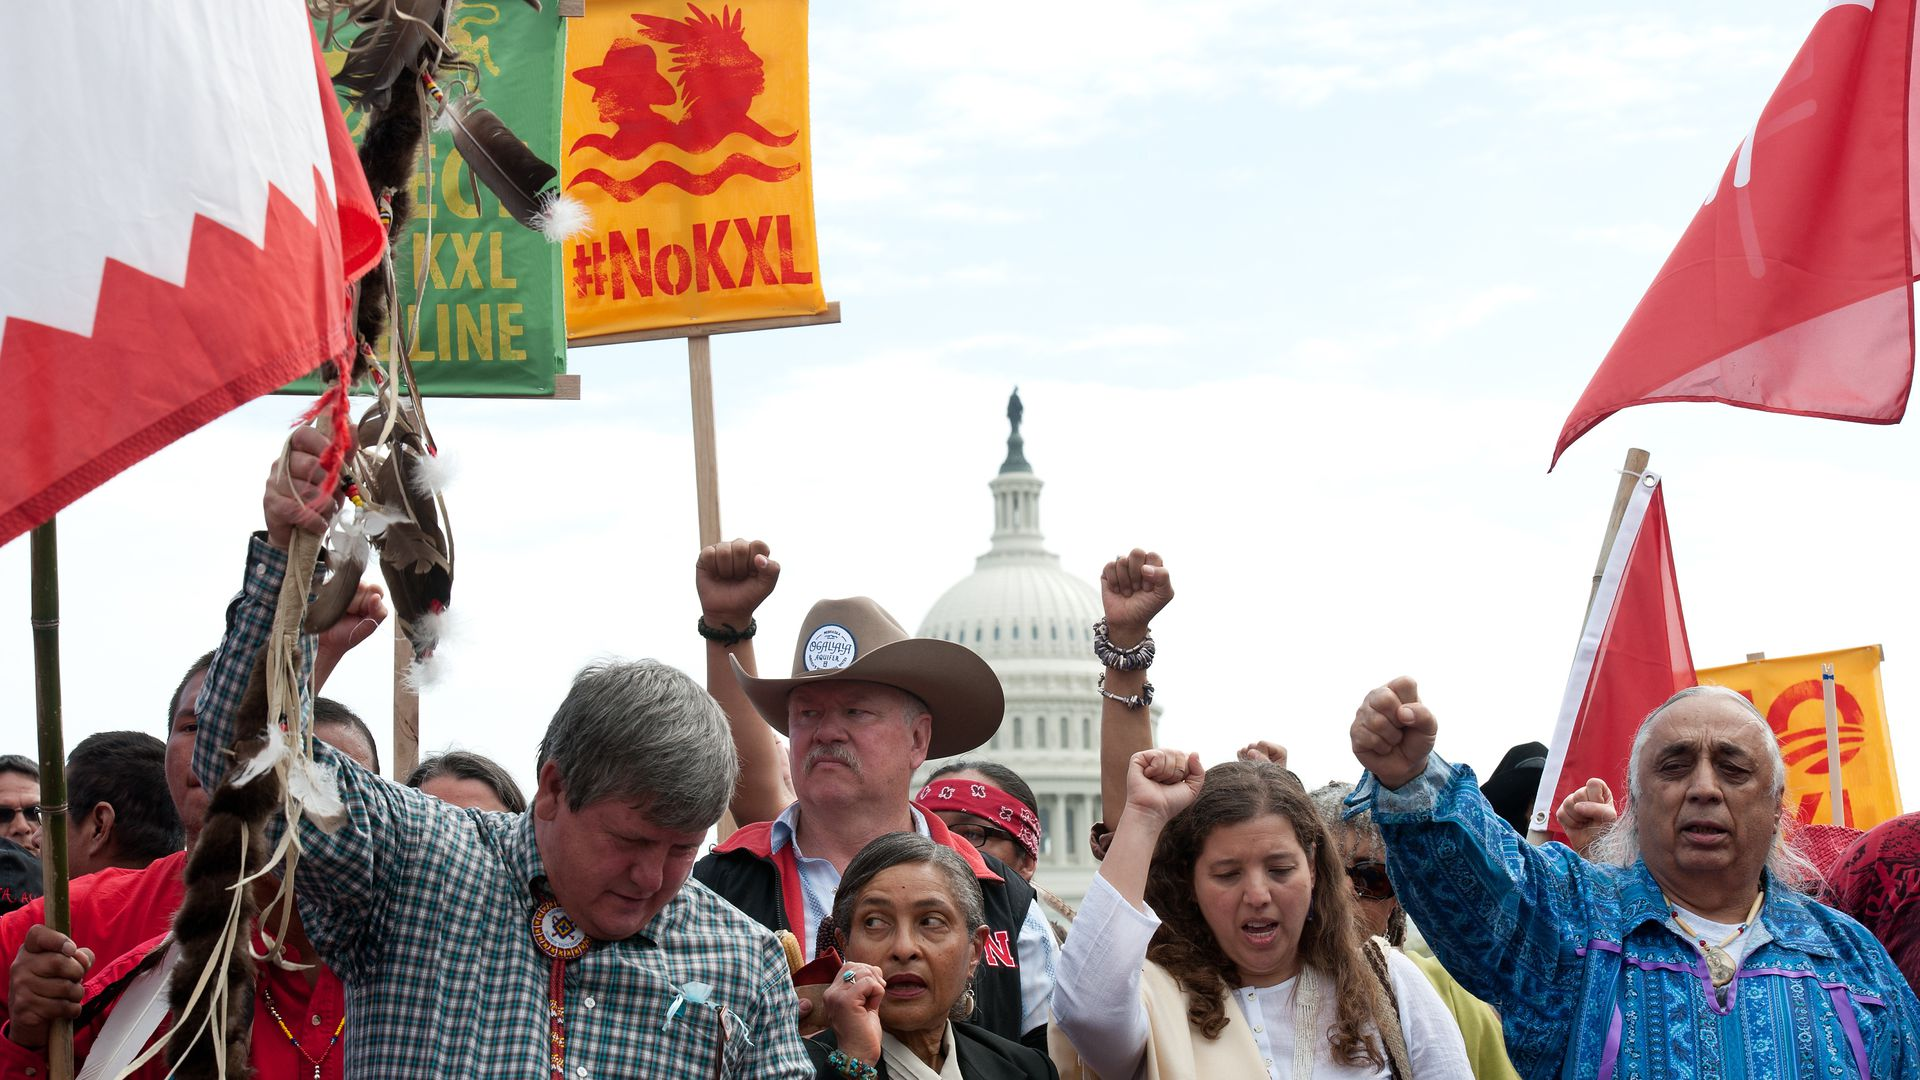 Protests about the construction of the Keystone XL Pipeline